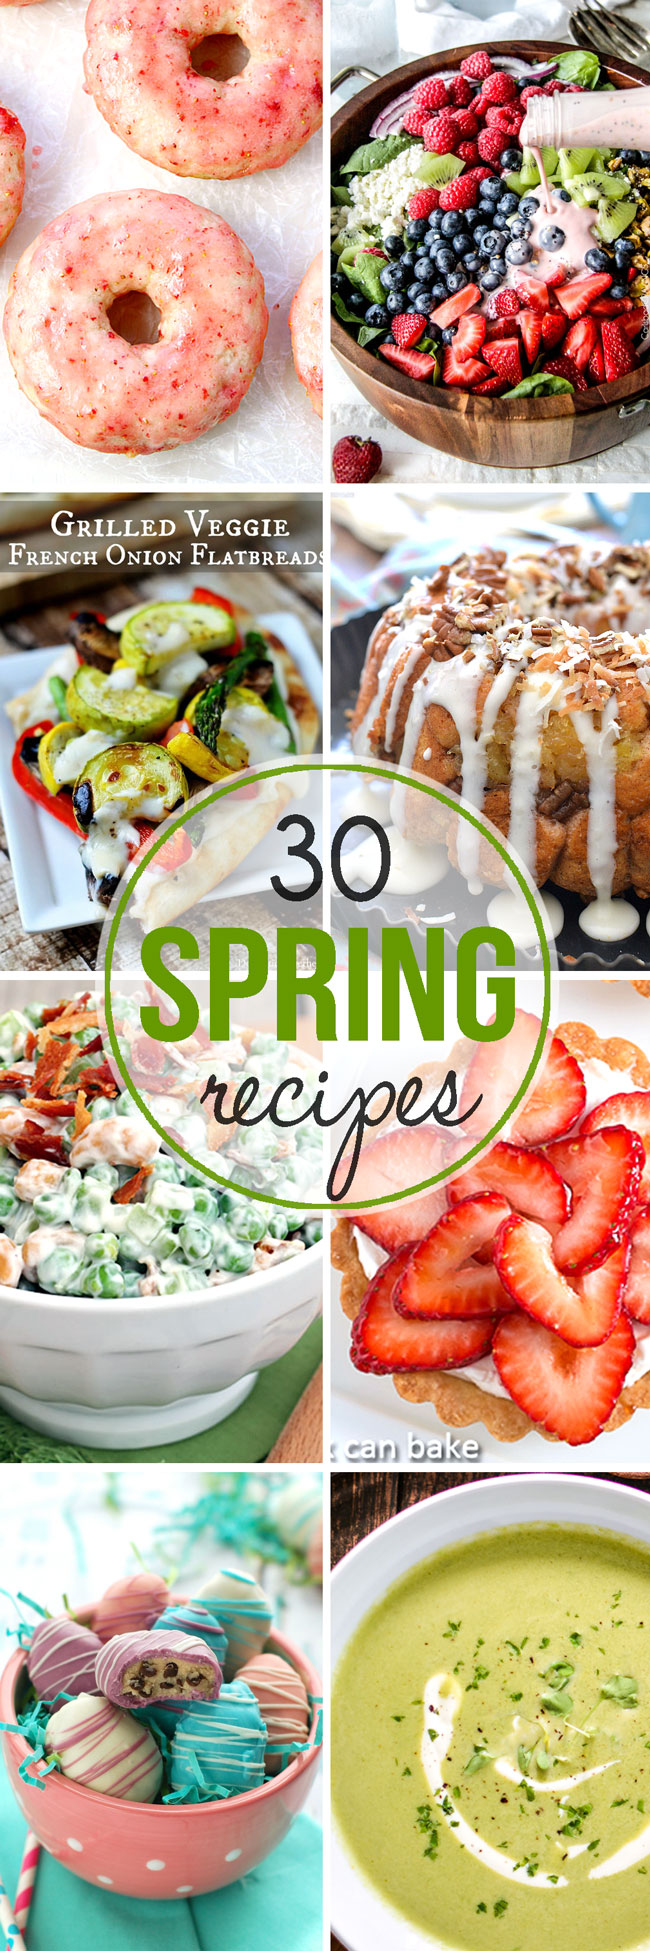 Get that grill fired up and that fresh produce chopped! Here are 30+ Spring Recipes to celebrate!